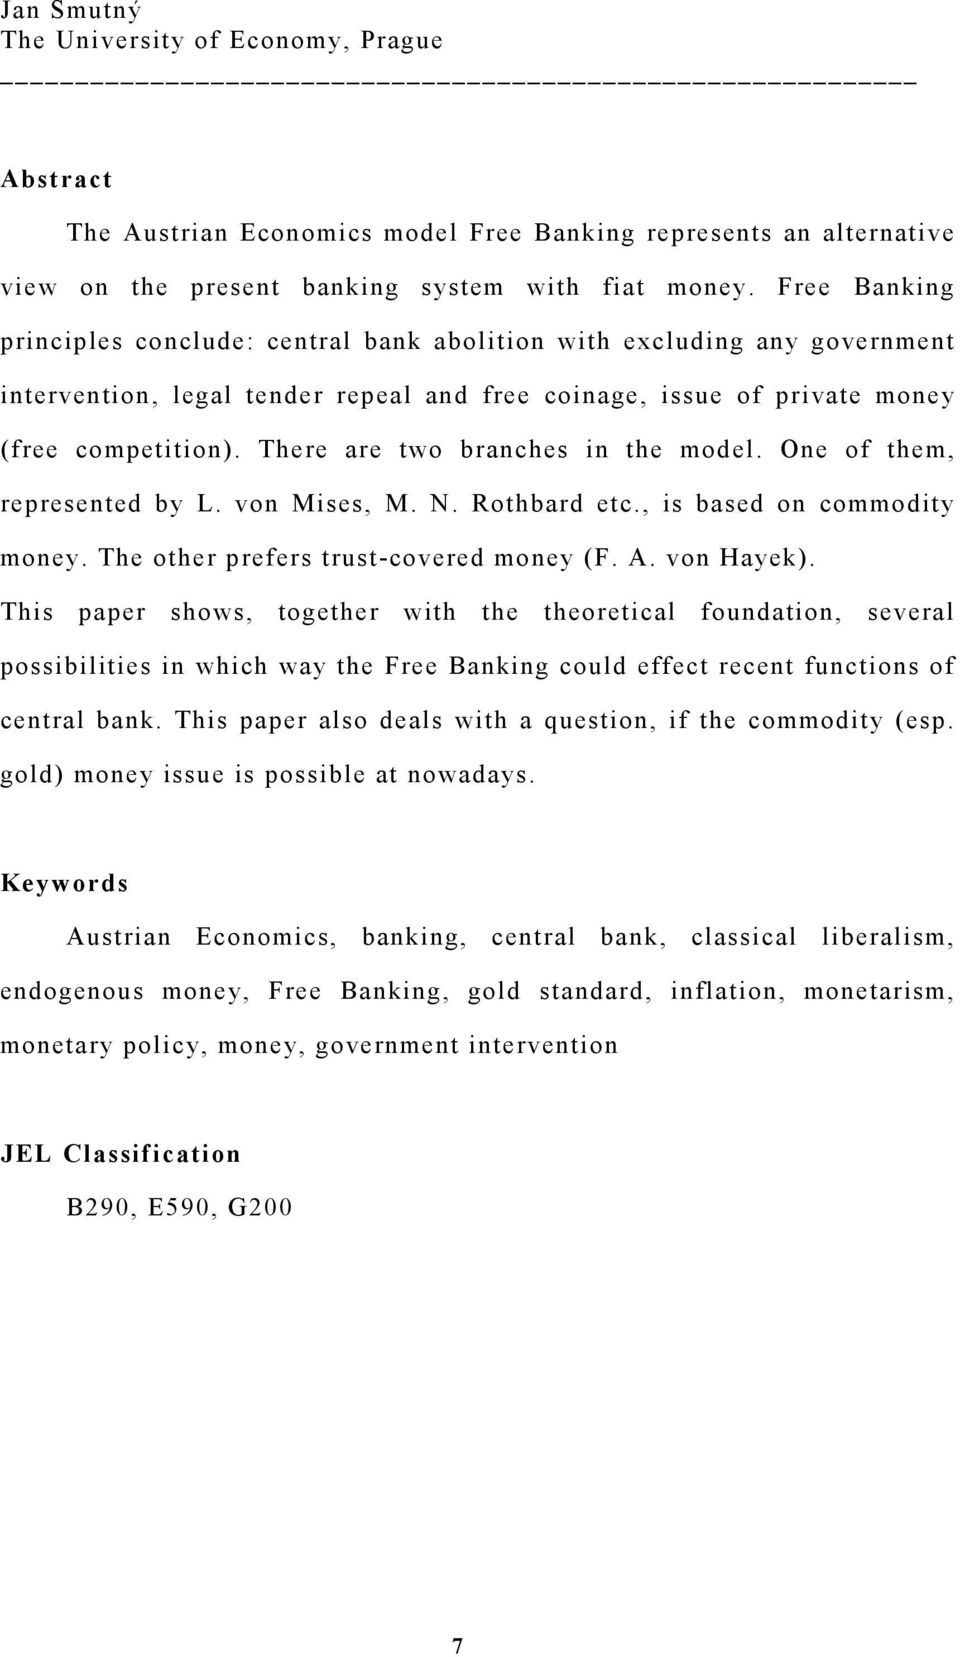 There are two branches in the model. One of them, represented by L. von Mises, M. N. Rothbard etc., is based on commodity money. The other prefers trust-covered money (F. A. von Hayek).